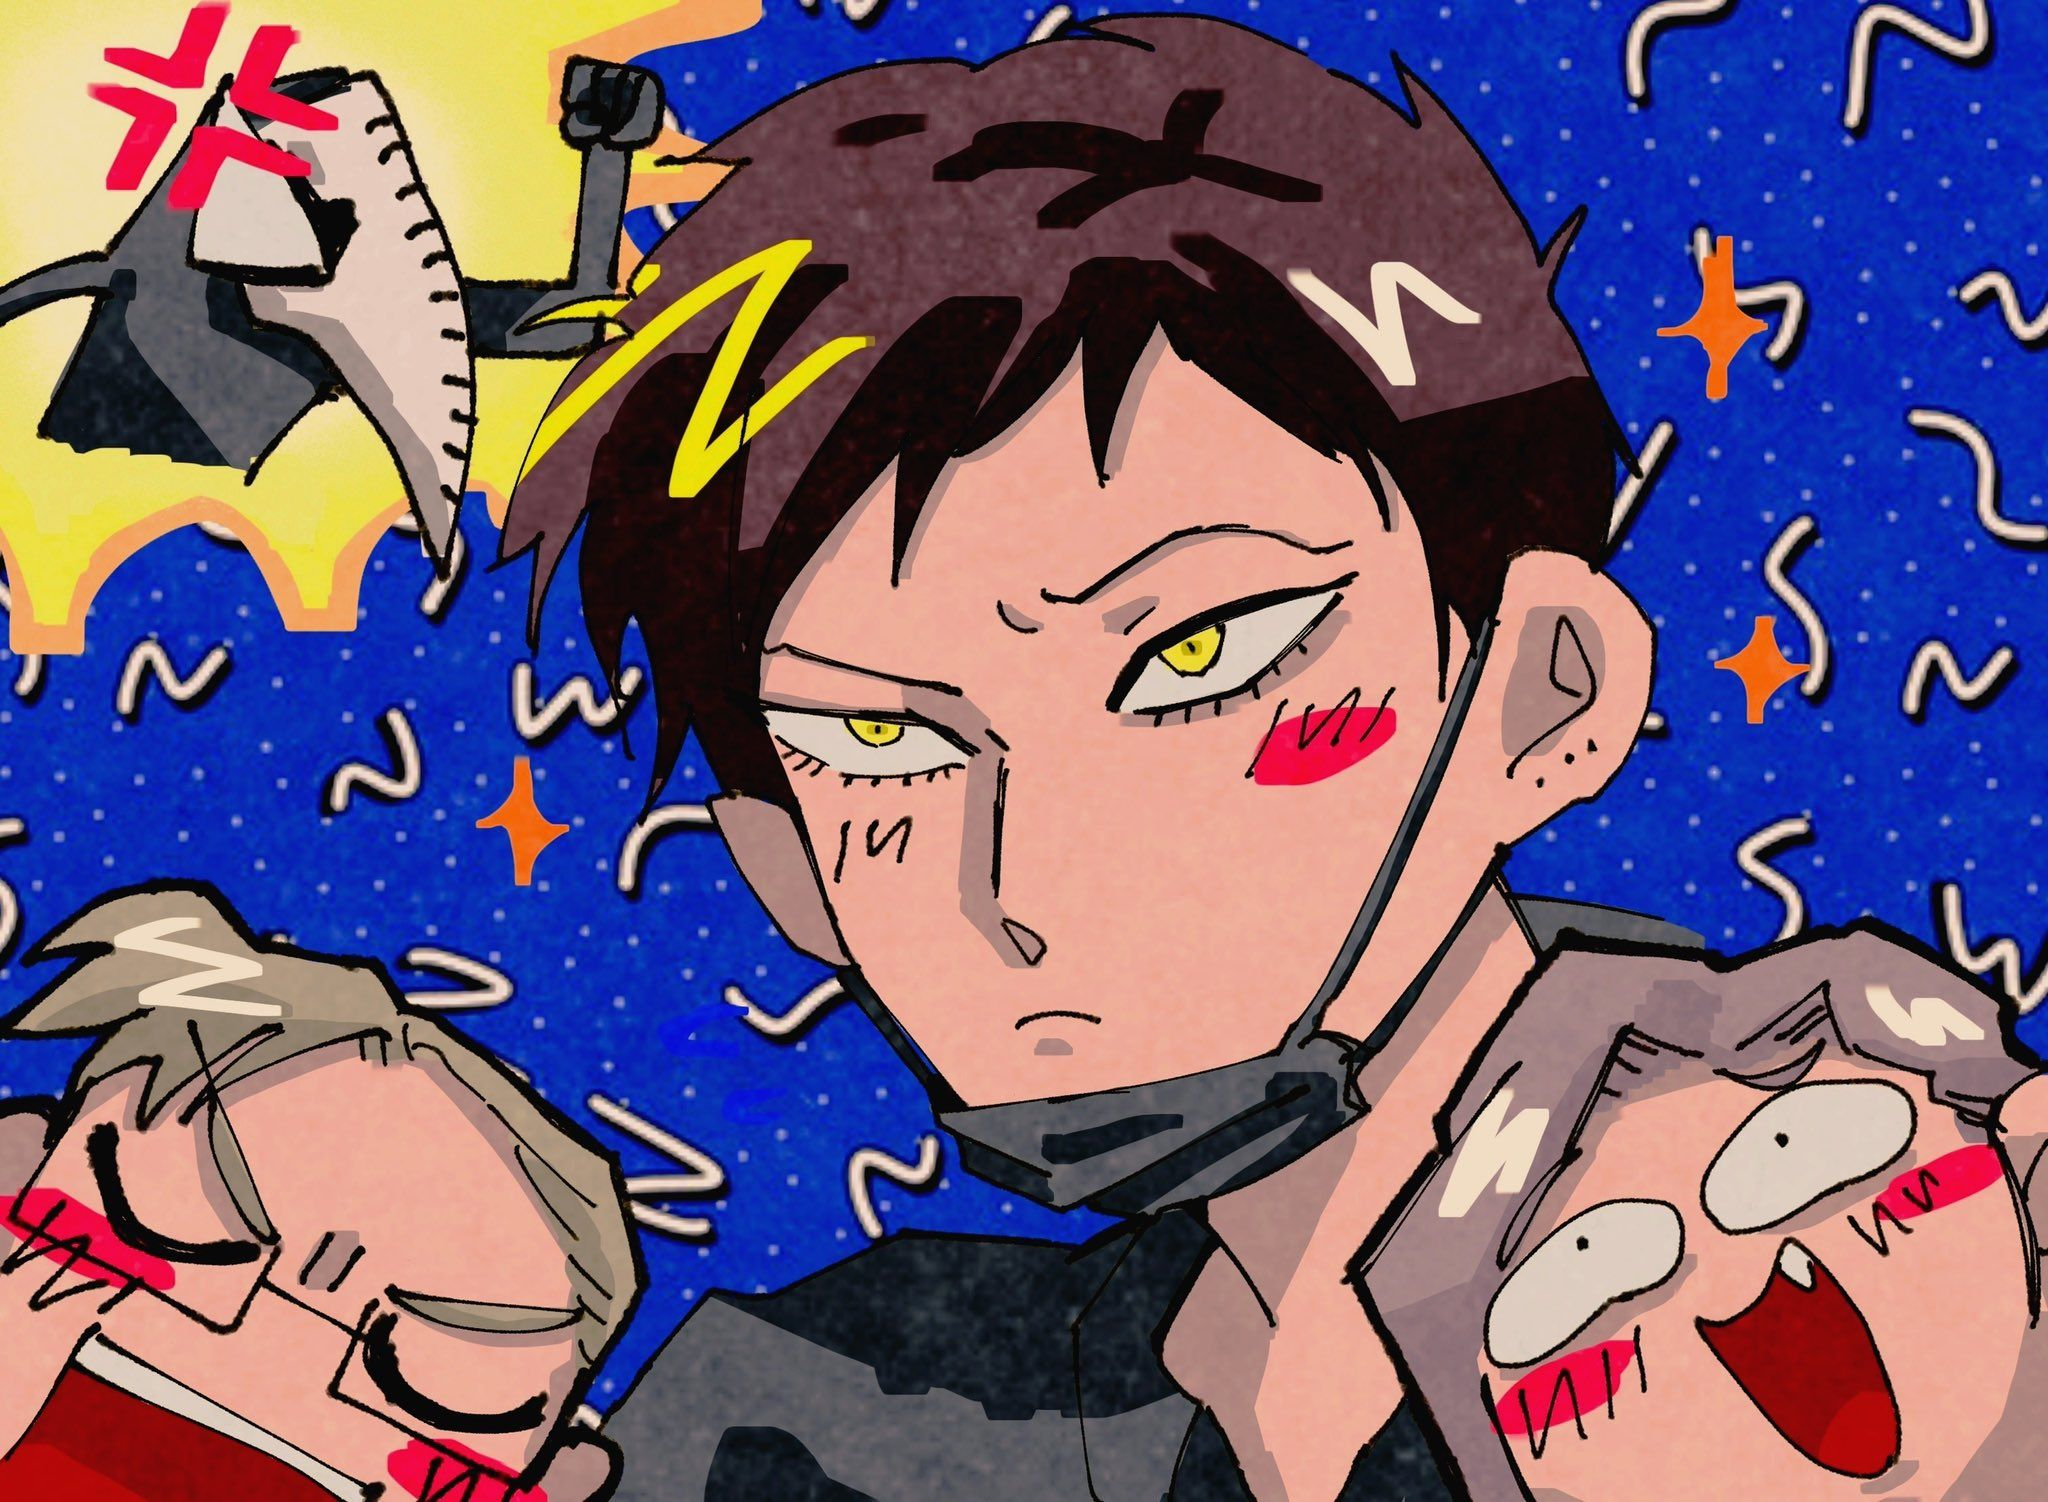 Pin By Michelletoriello On Shie Hassaikai X League Of Villains In 2020 Anime Art Reference Hero If a global pandemic and the shie hassaikai have worked together to teach me anything, it's that every guy is orders of magnitude hotter with his face. www pinterest co kr